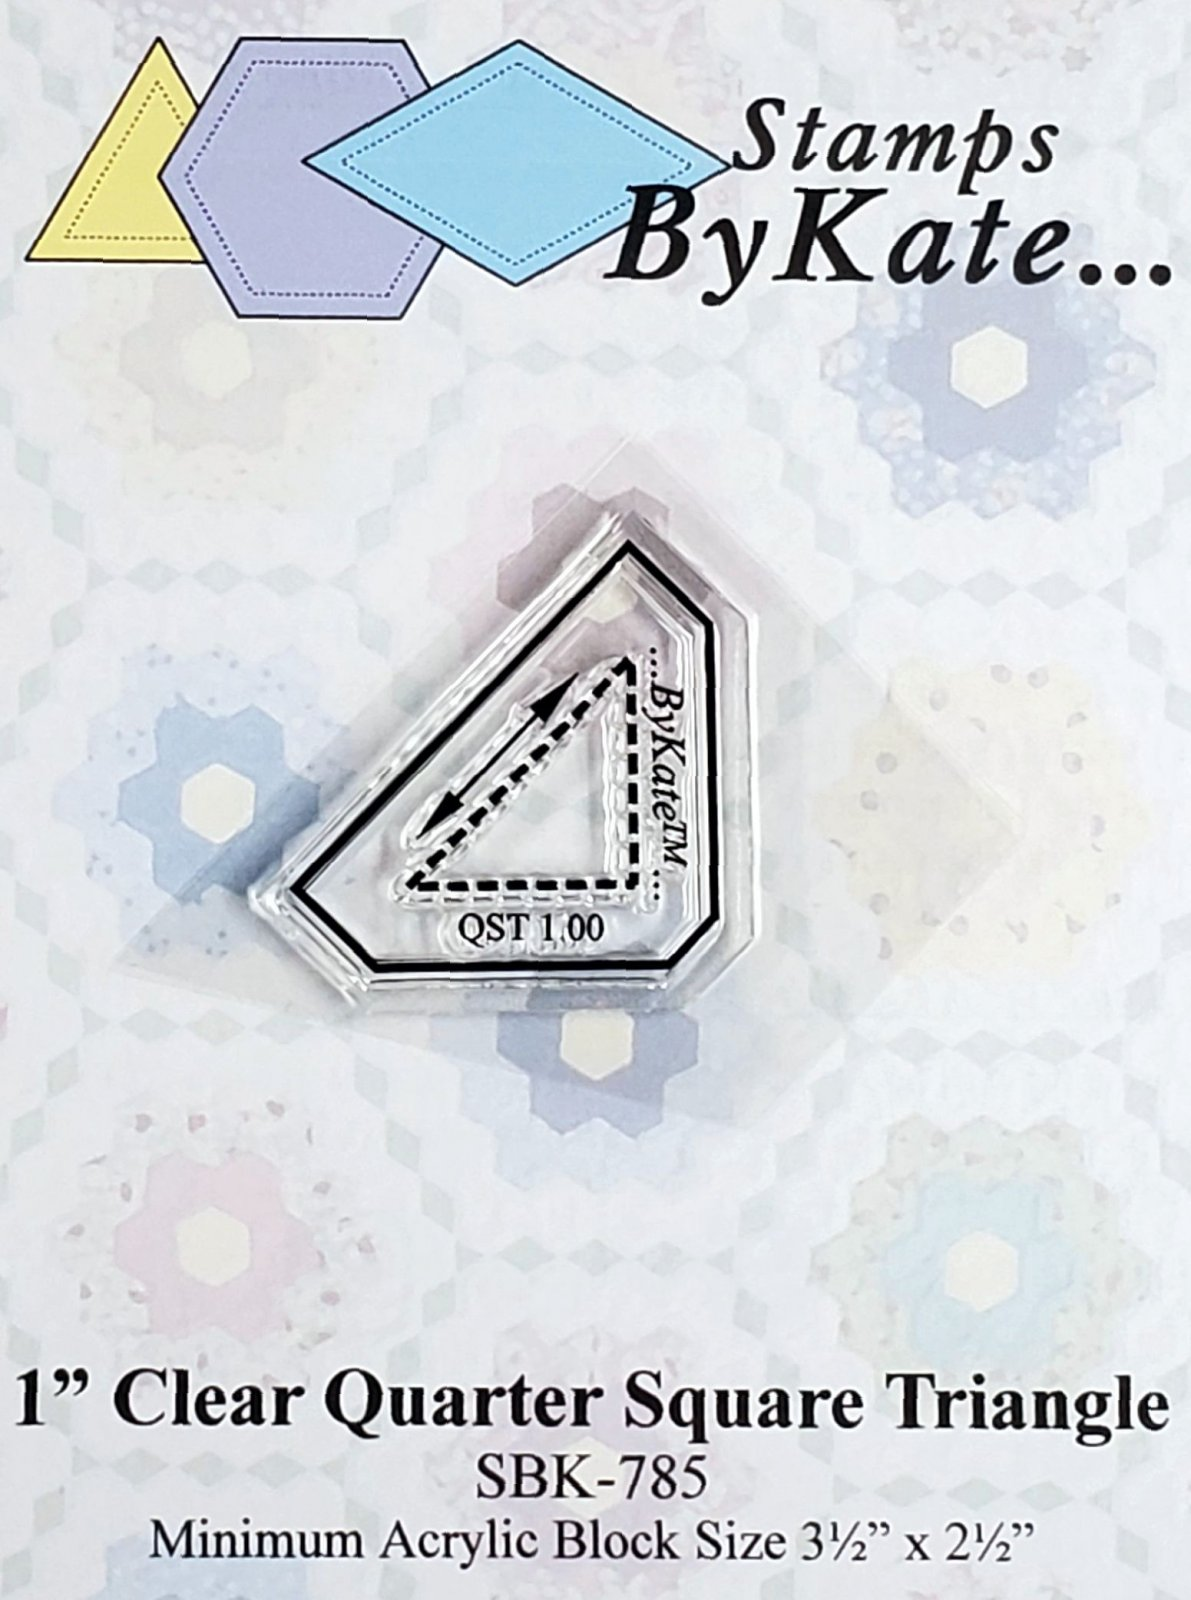 Clear QST (Quarter Square Triangle) Stamps